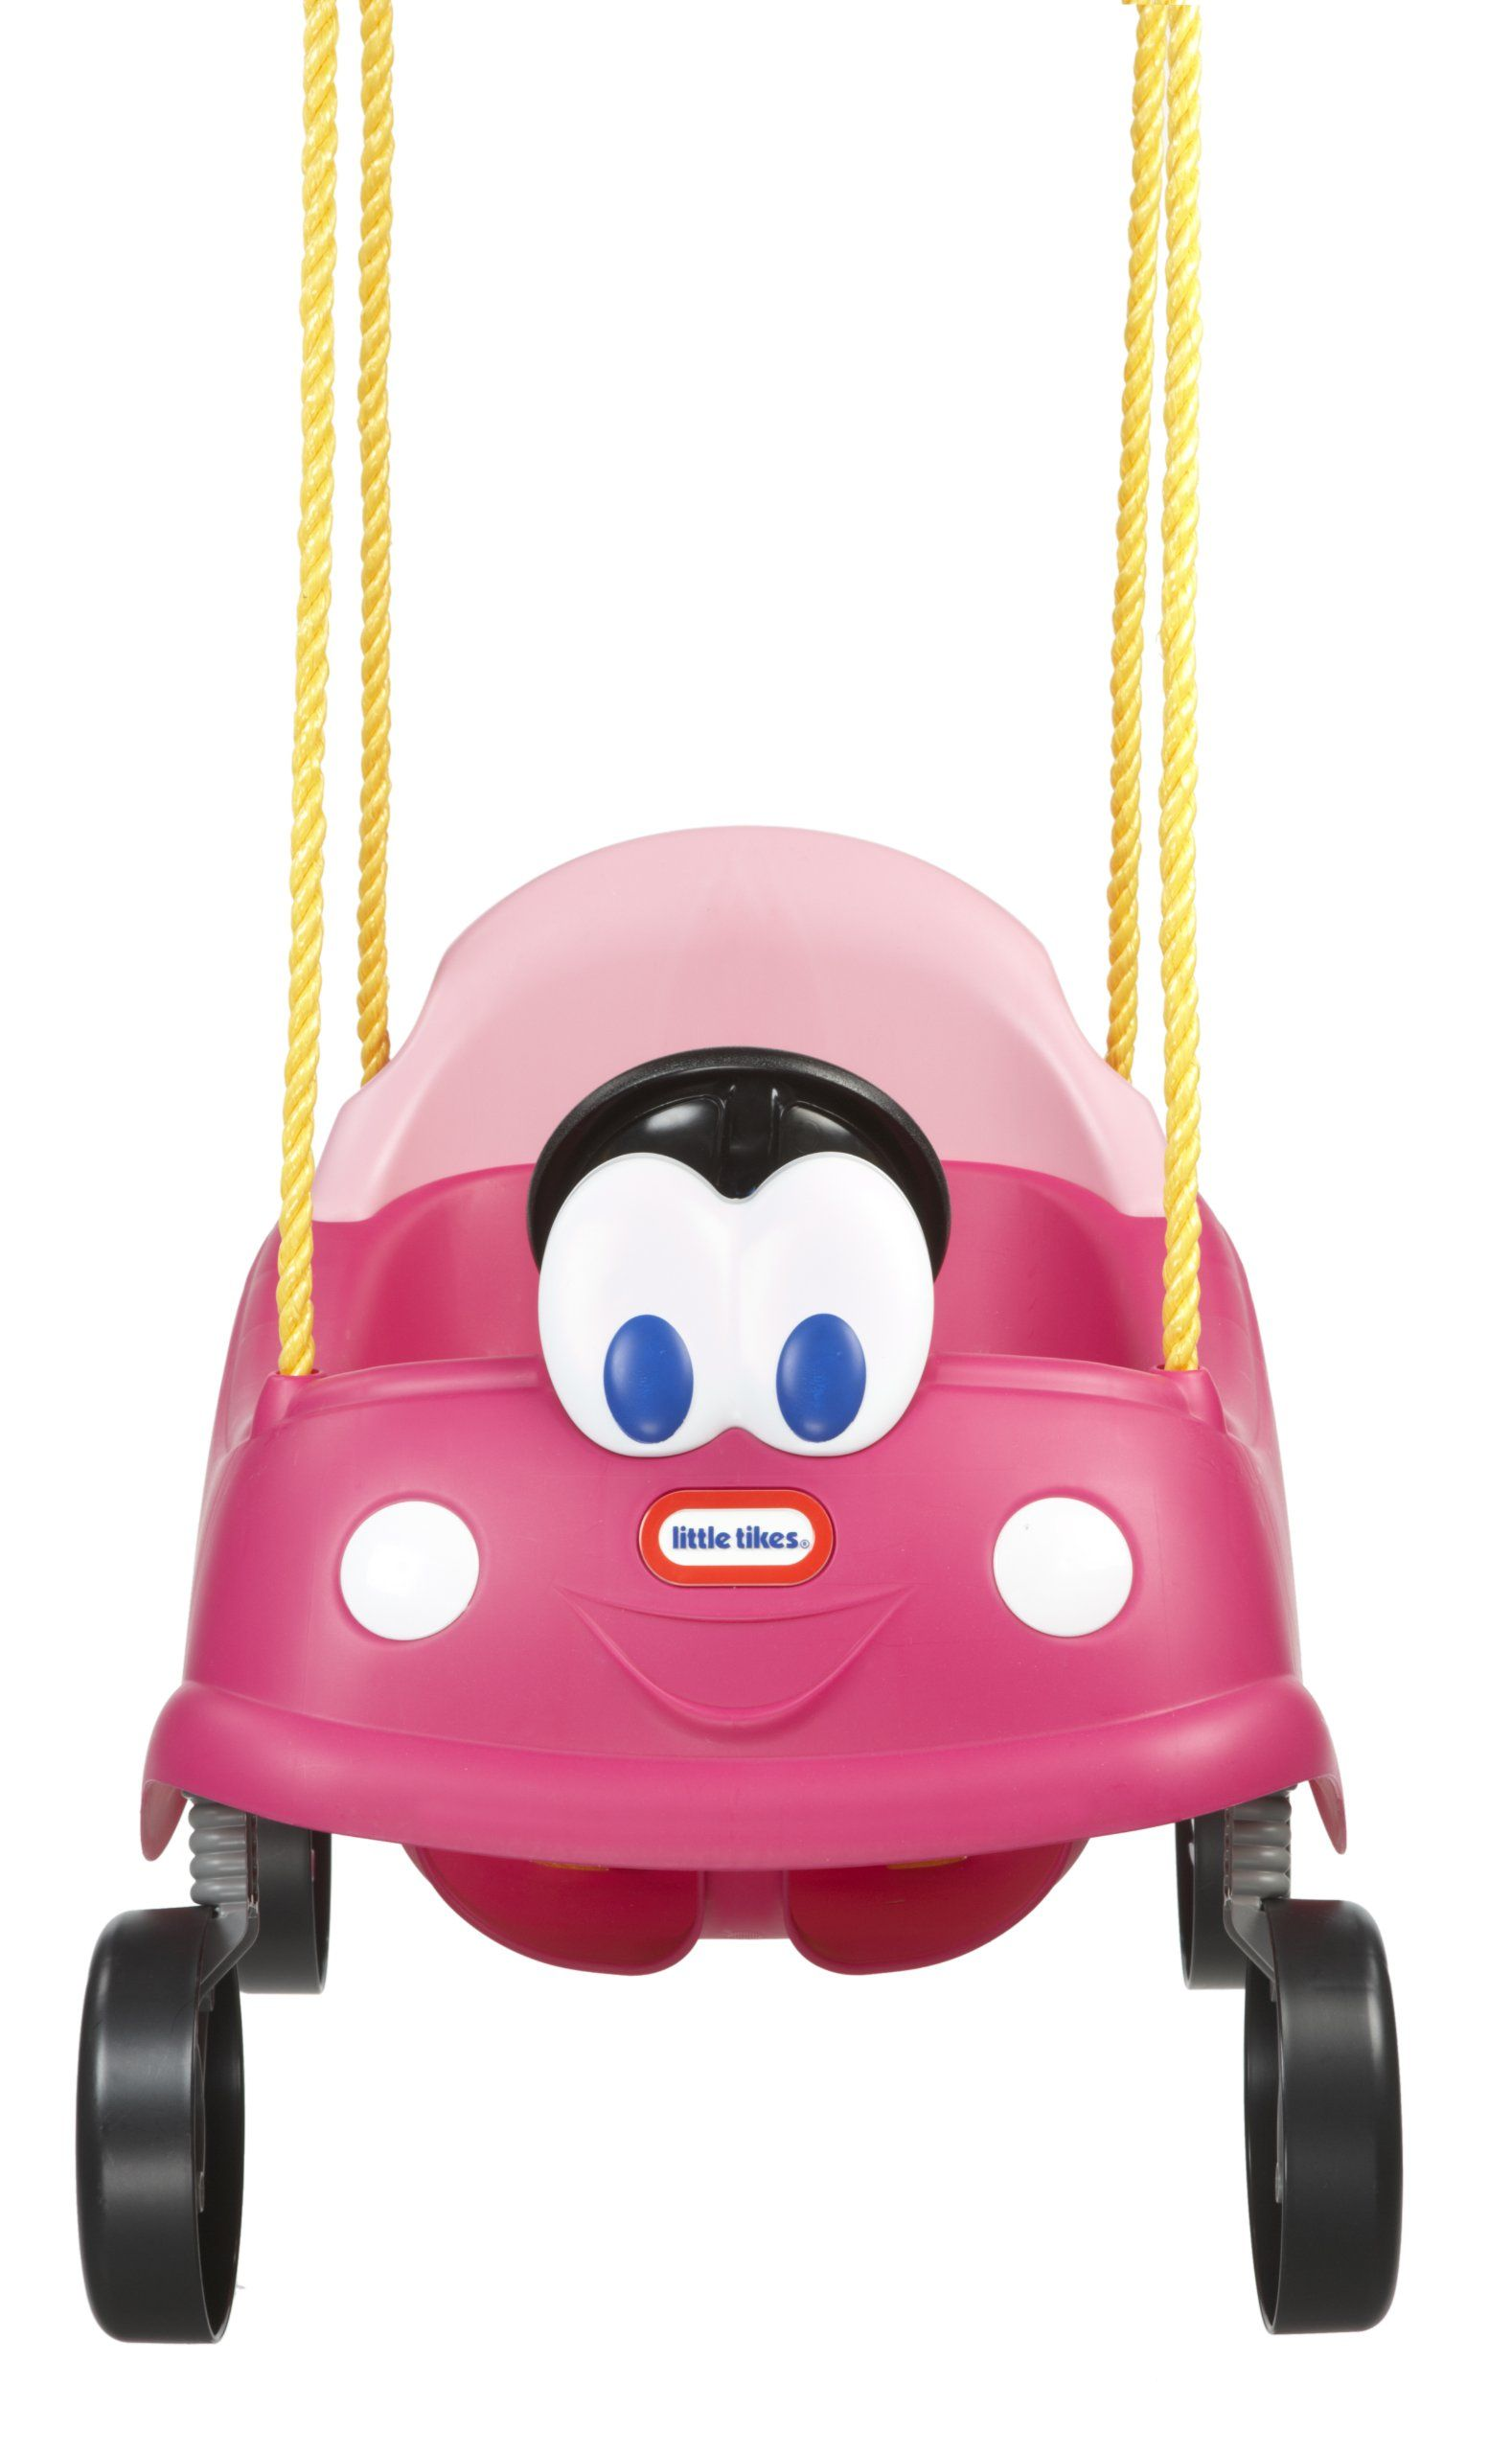 Little tikes princess cozy coupe first swing seat belt to keep baby